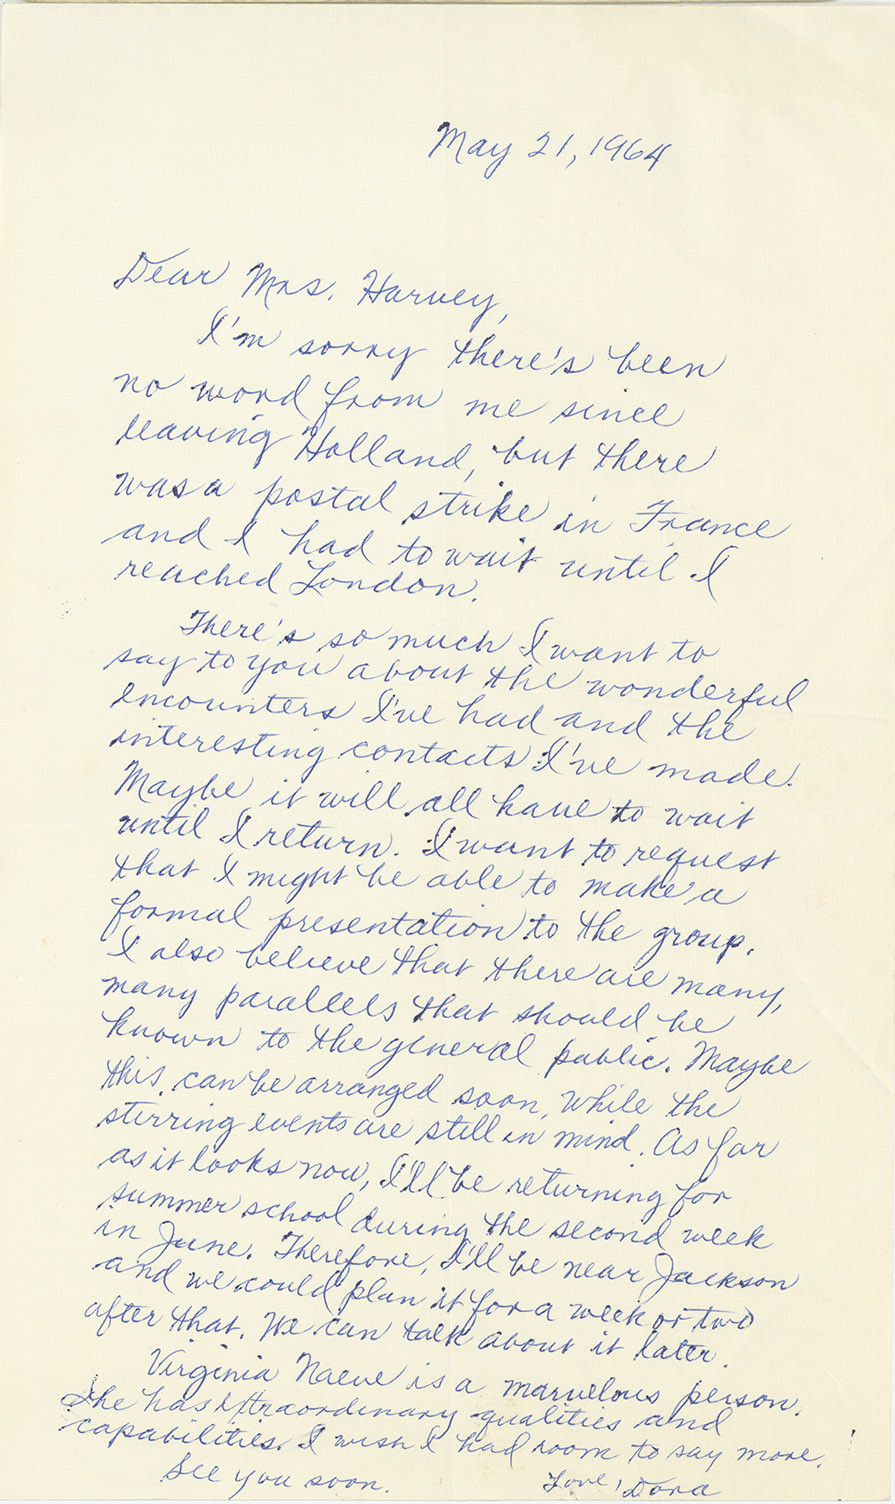 Letter from Dora Wilson to Clarie Collins Harvey, May 21, 1964